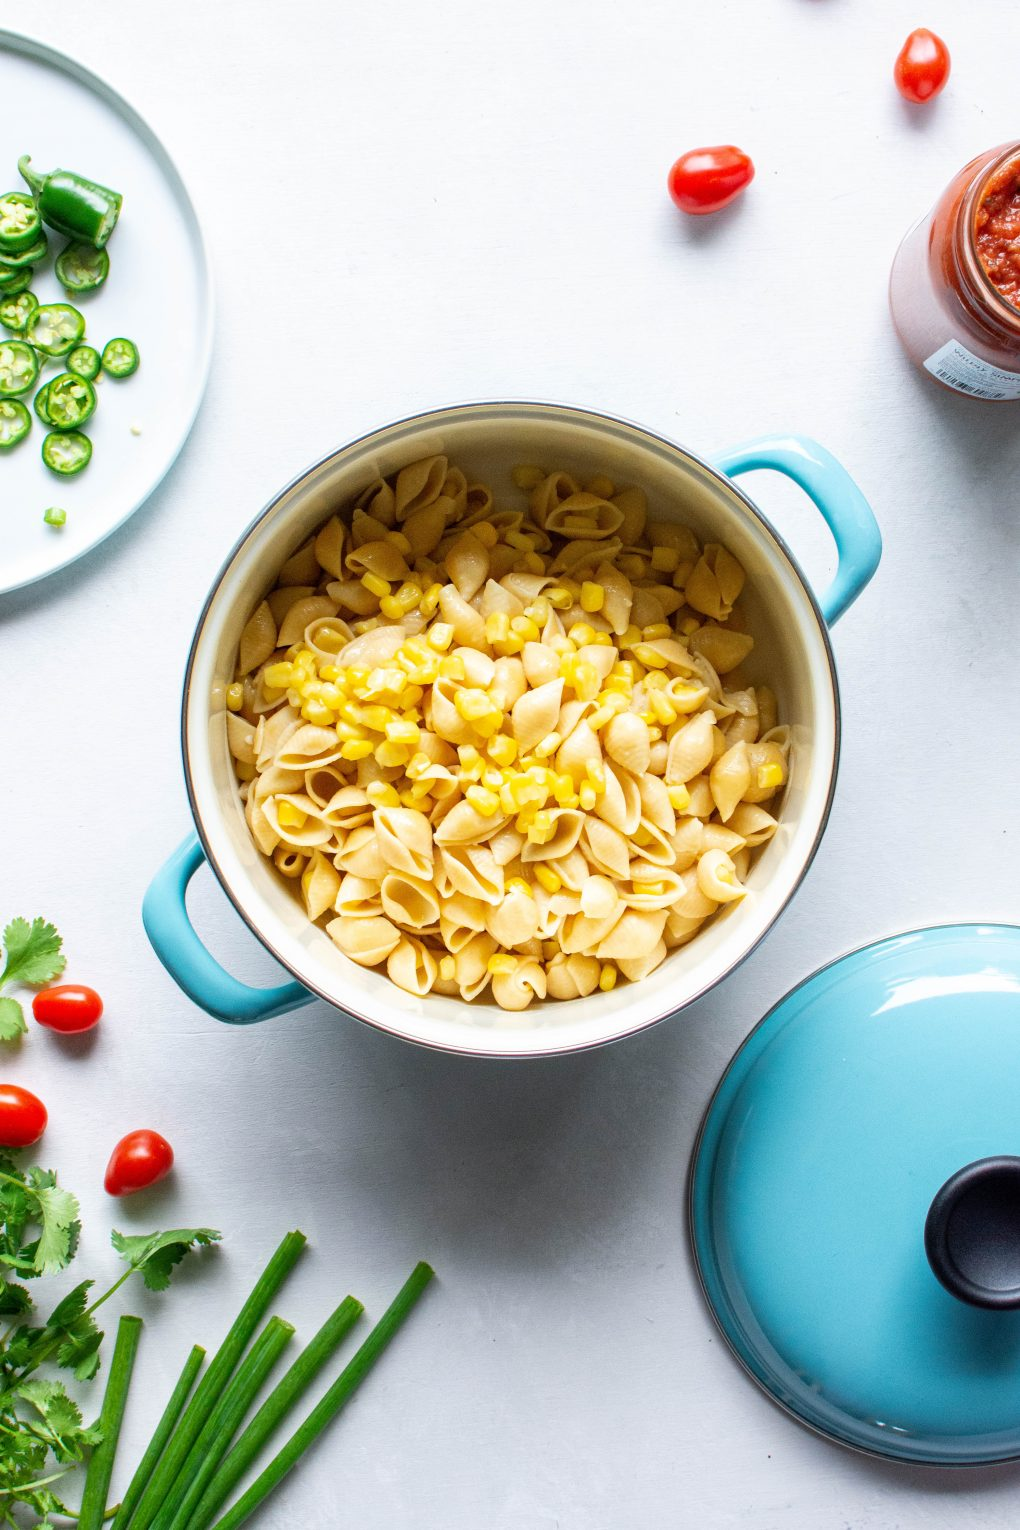 A blue pot of pasta and corn surrounded by cherry tomatoes, green onions, and fresh herbs on a white background.